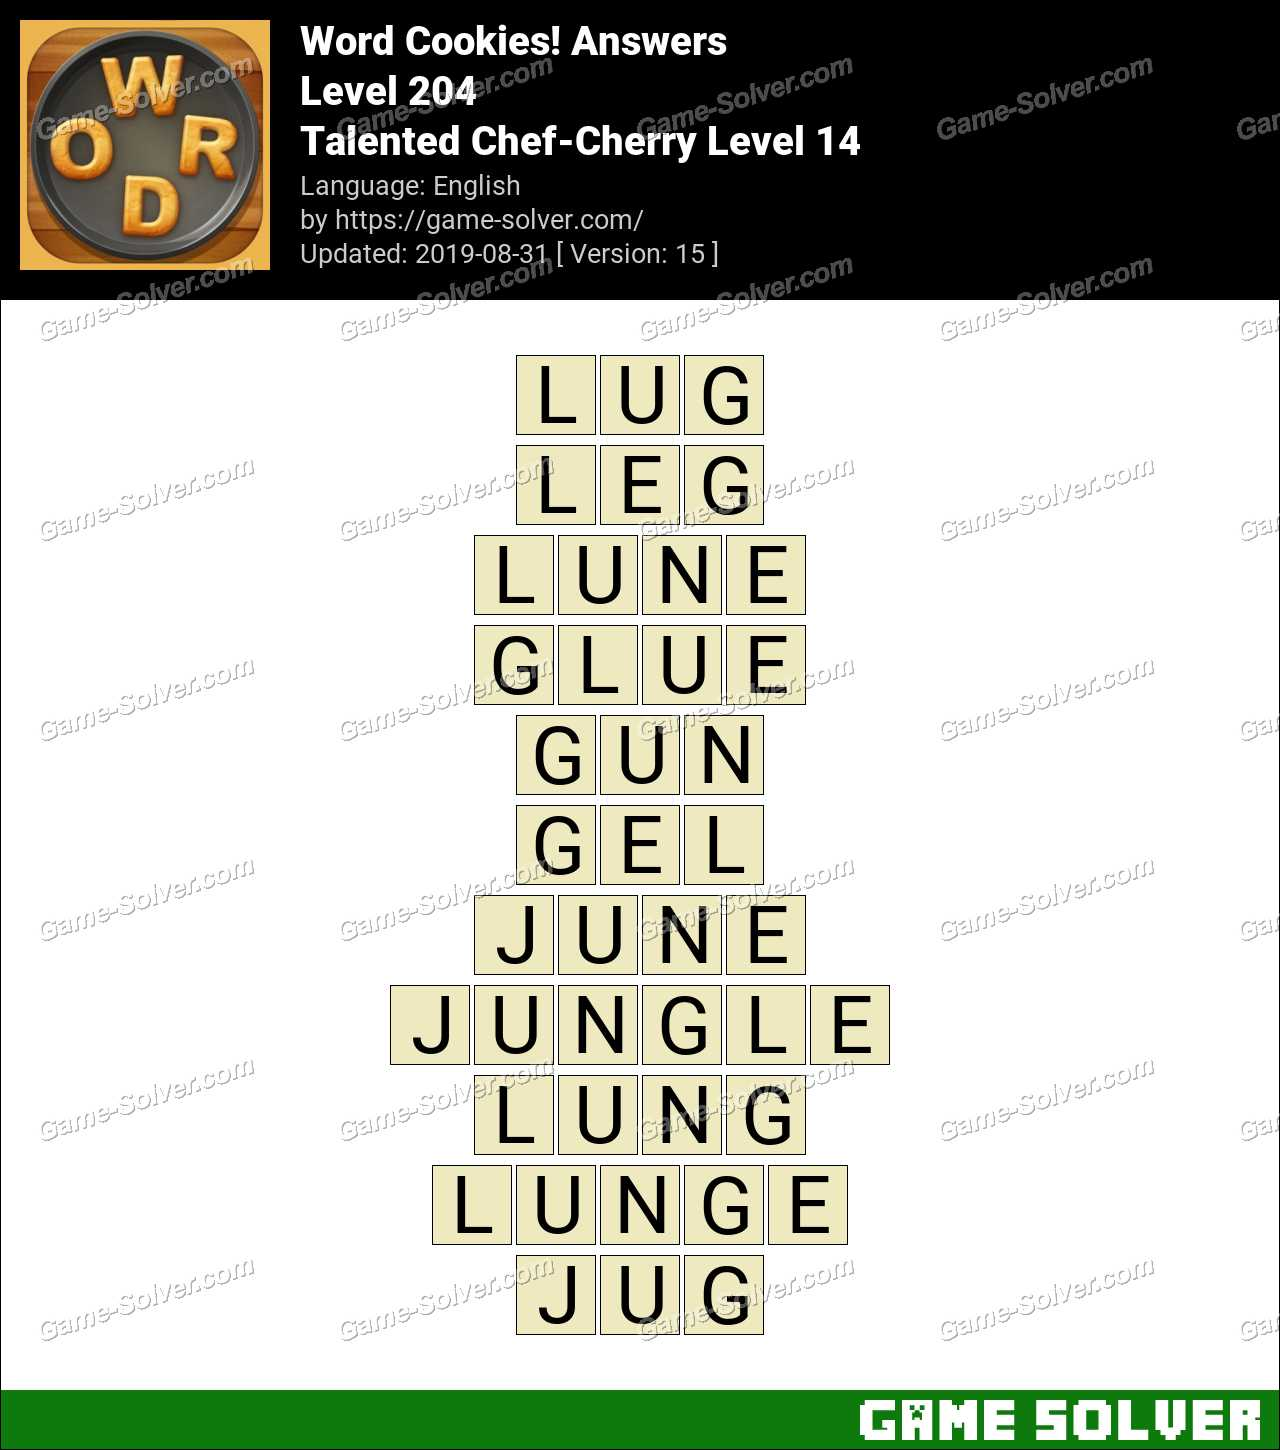 Word Cookies Talented Chef-Cherry Level 14 Answers